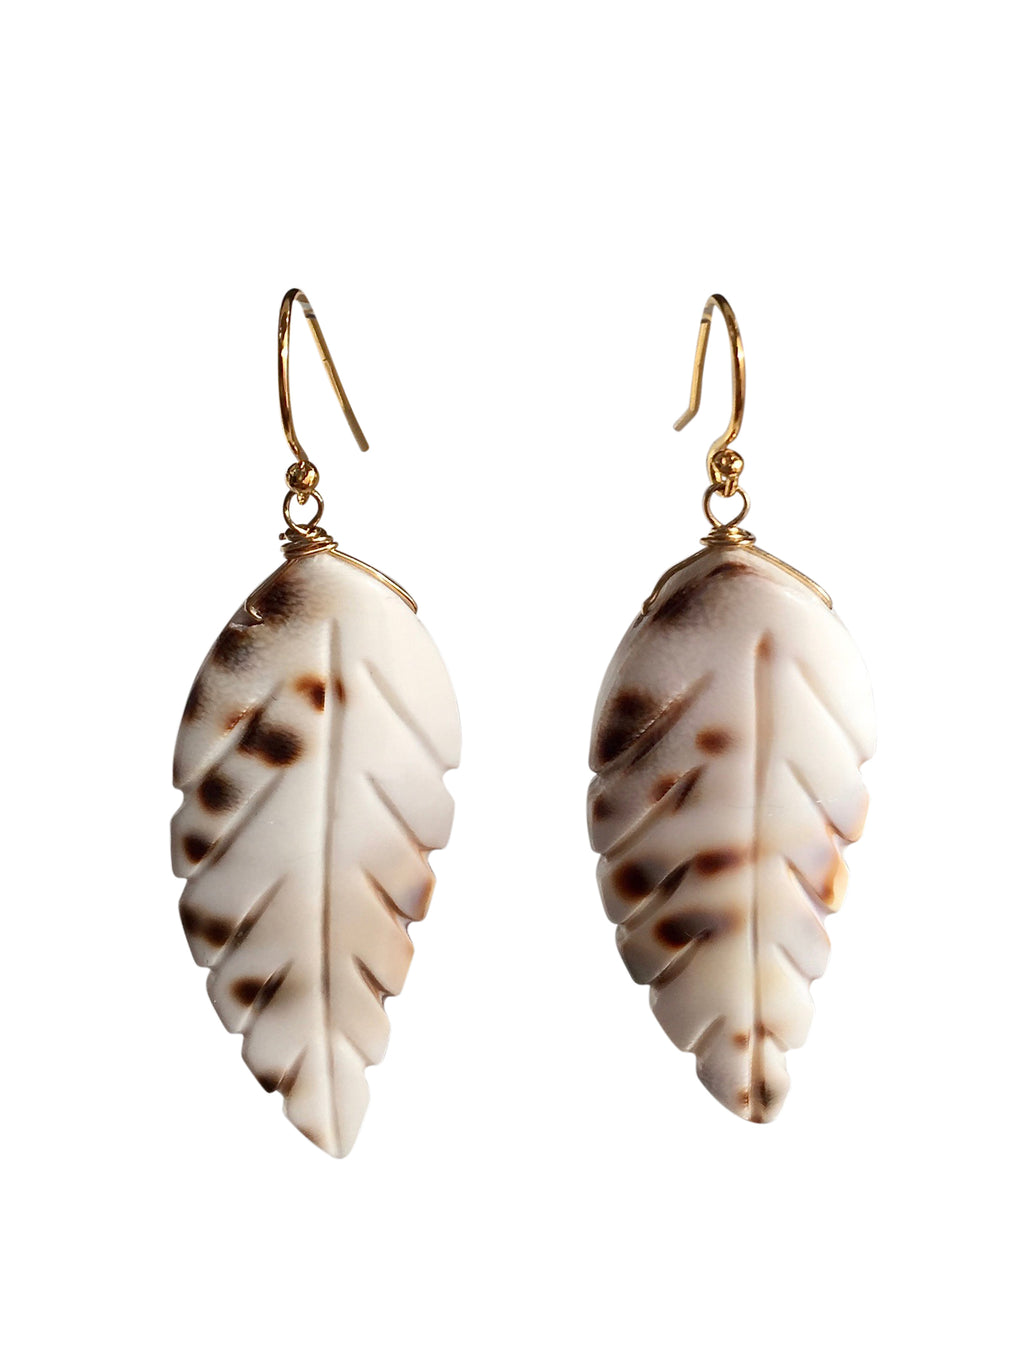 oorbellen earrings sieraden jewelry shell schelp statement hanger earring white brown blad veer leaf goldplated